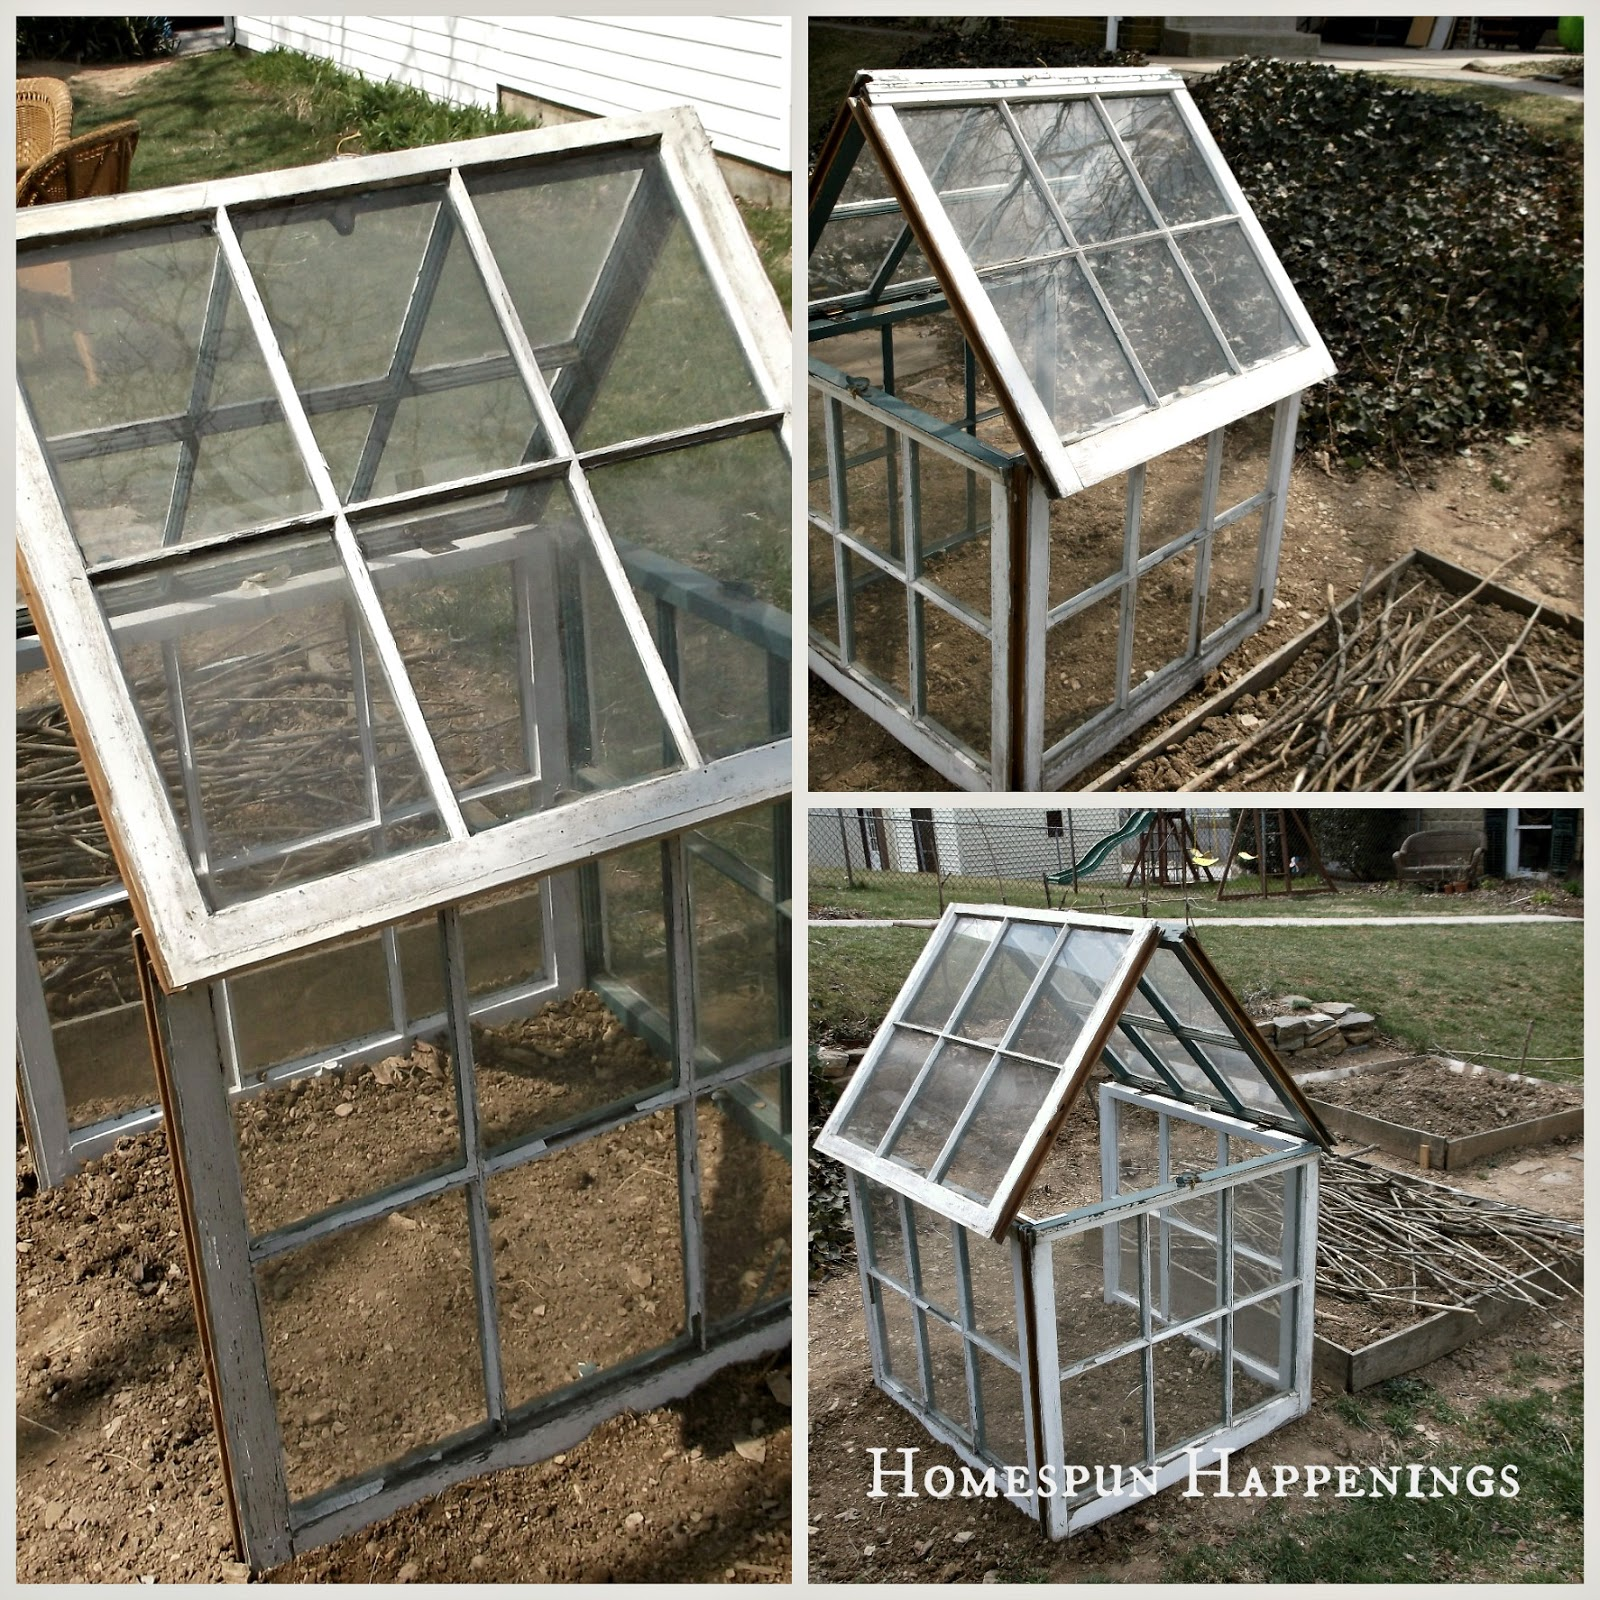 homespun happenings diy greenhouse out of old windows